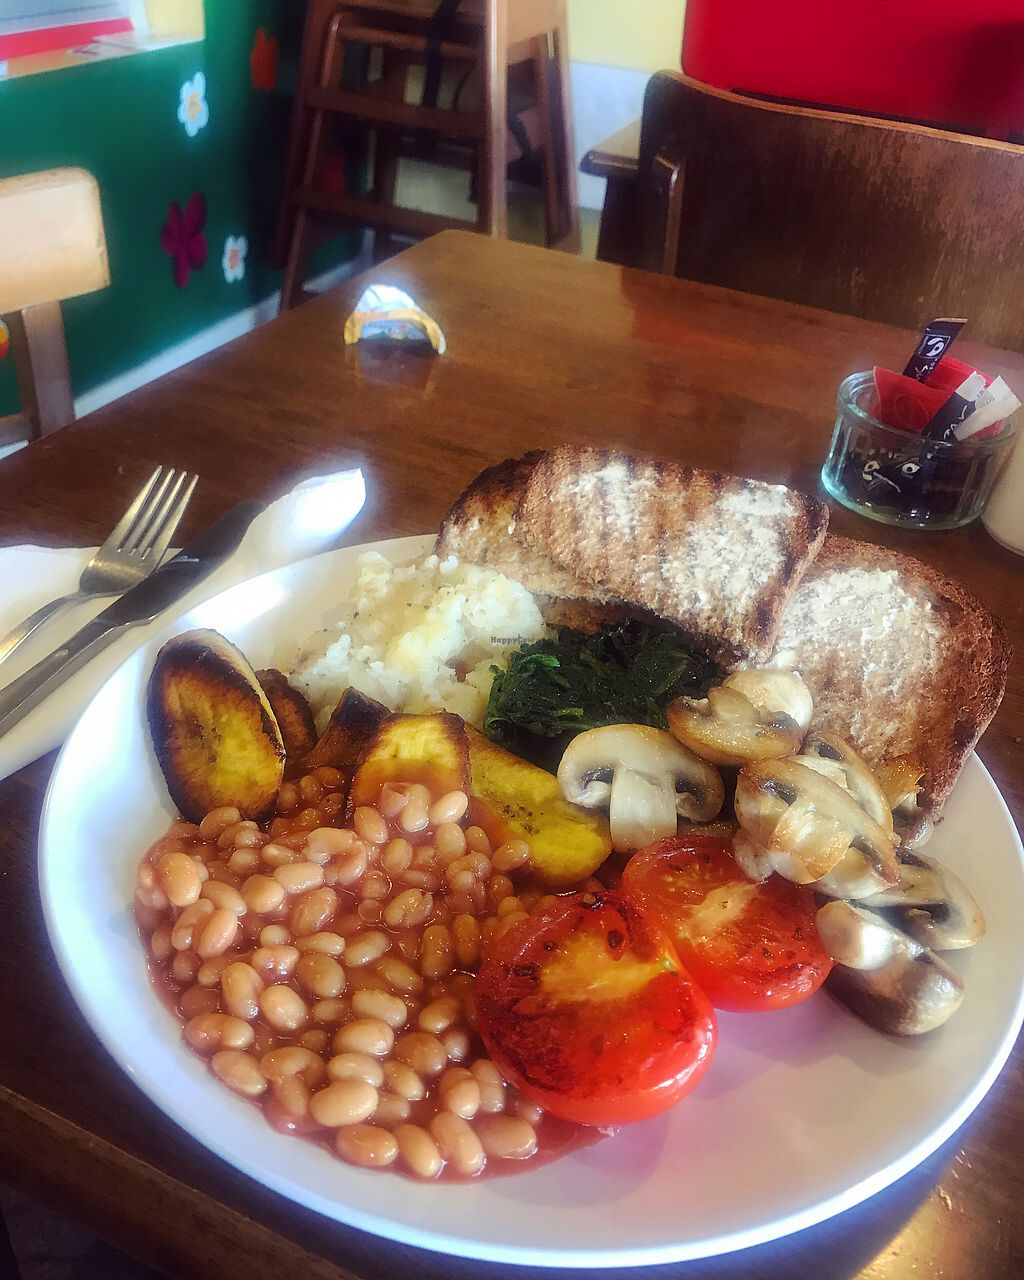 """Photo of Frangipani Cafe  by <a href=""""/members/profile/EllenM"""">EllenM</a> <br/>Vegan brunch  <br/> September 3, 2017  - <a href='/contact/abuse/image/87979/300413'>Report</a>"""